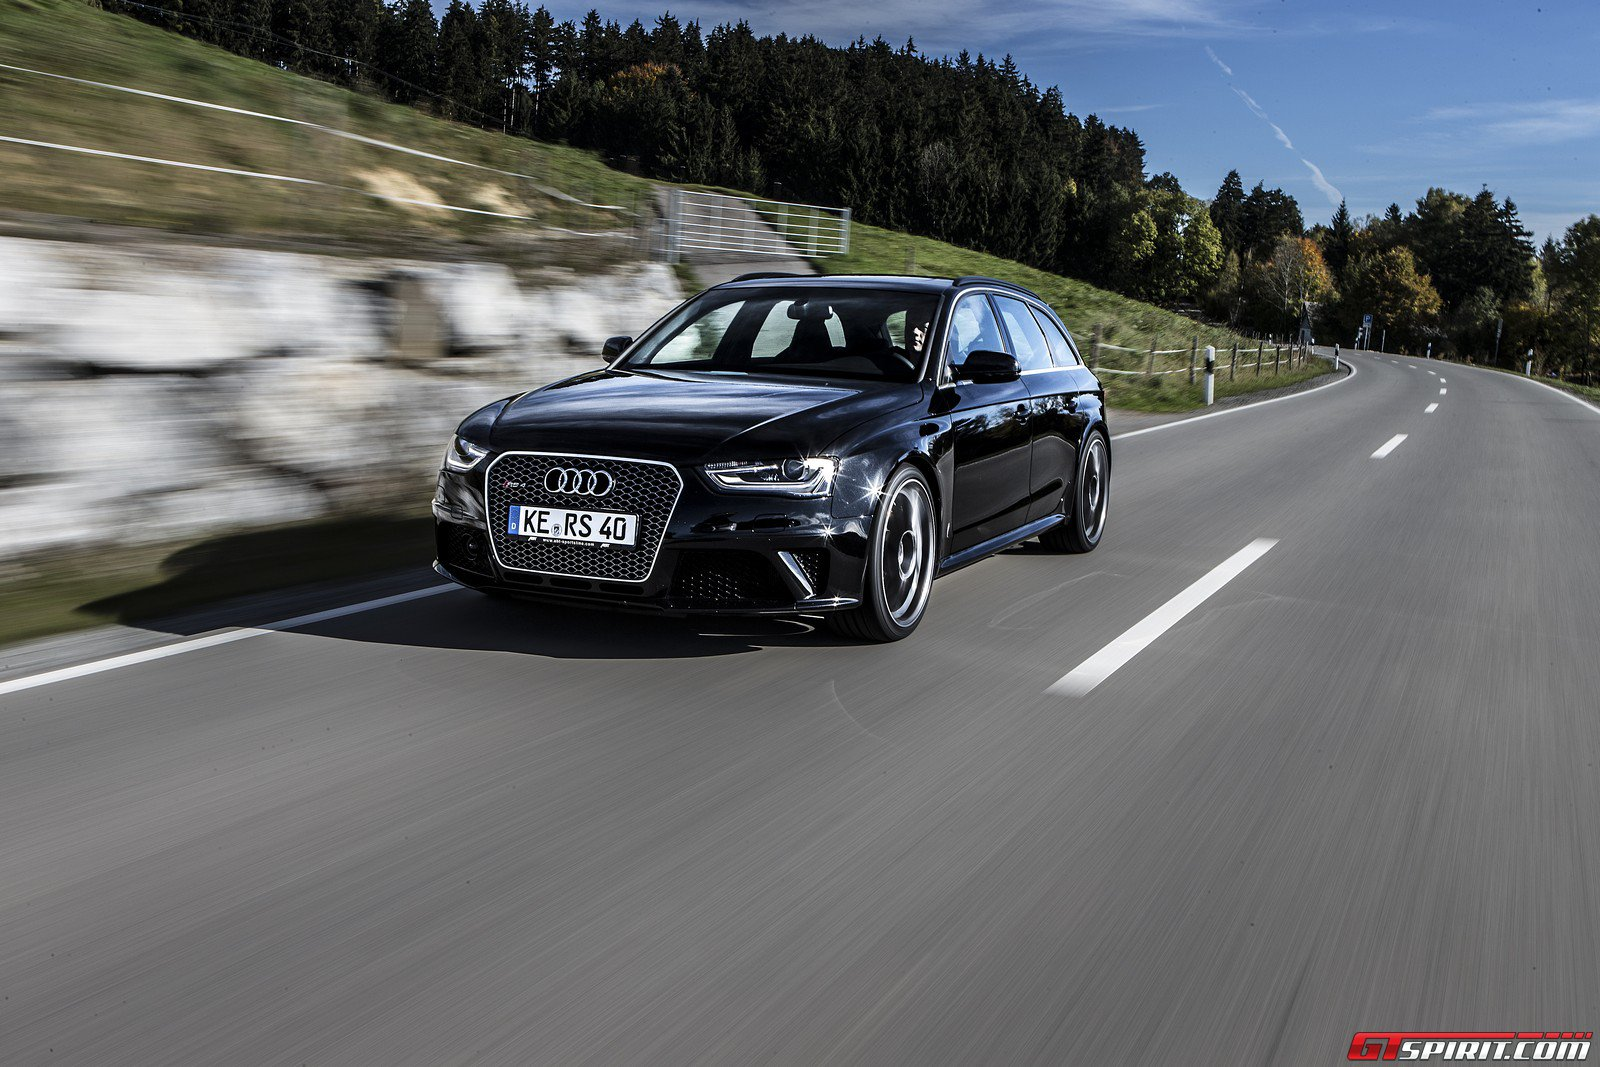 http://www.gtspirit.com/wp-content/gallery/abt-sportsline-rs4/abt-sportsline-rs4-001.jpg